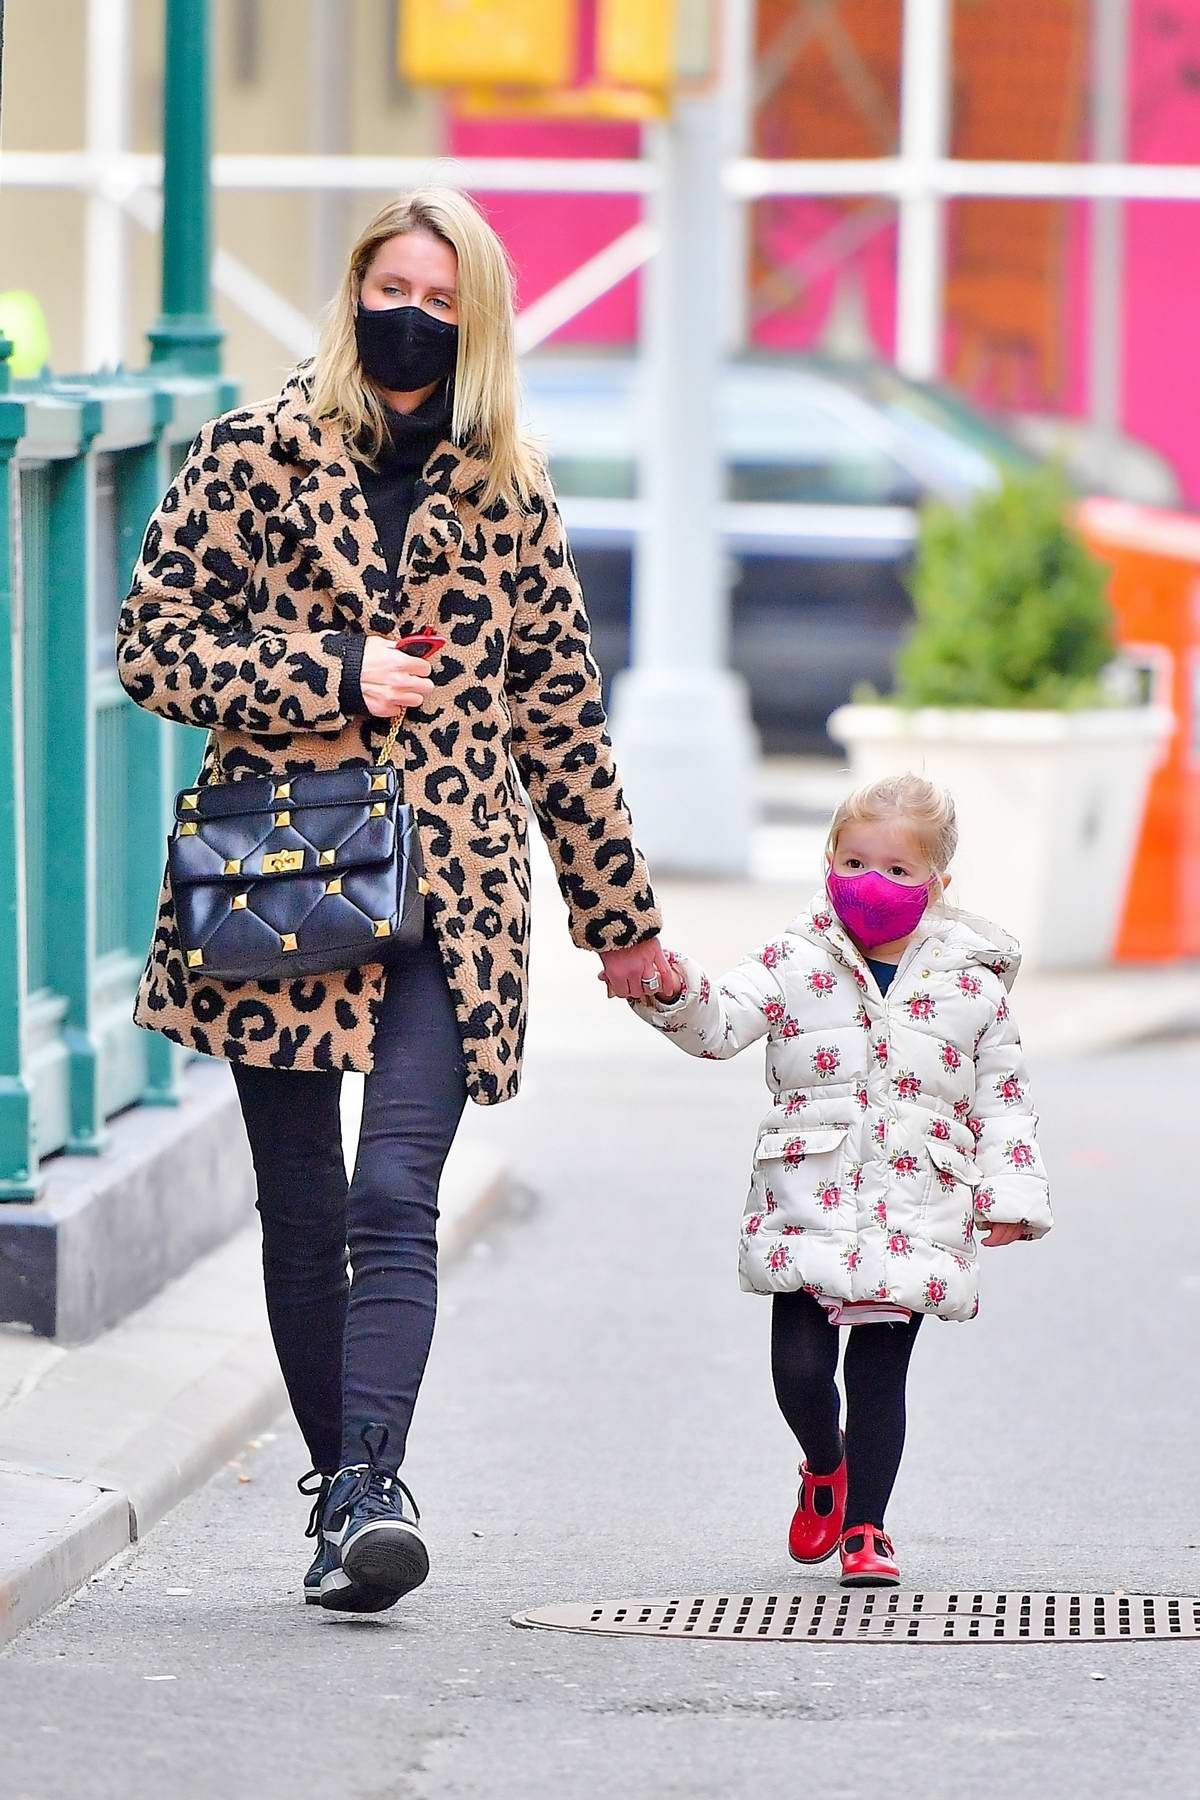 Nicky Hilton wears an animal print coat as she steps out with her daughter for a walk in New York City